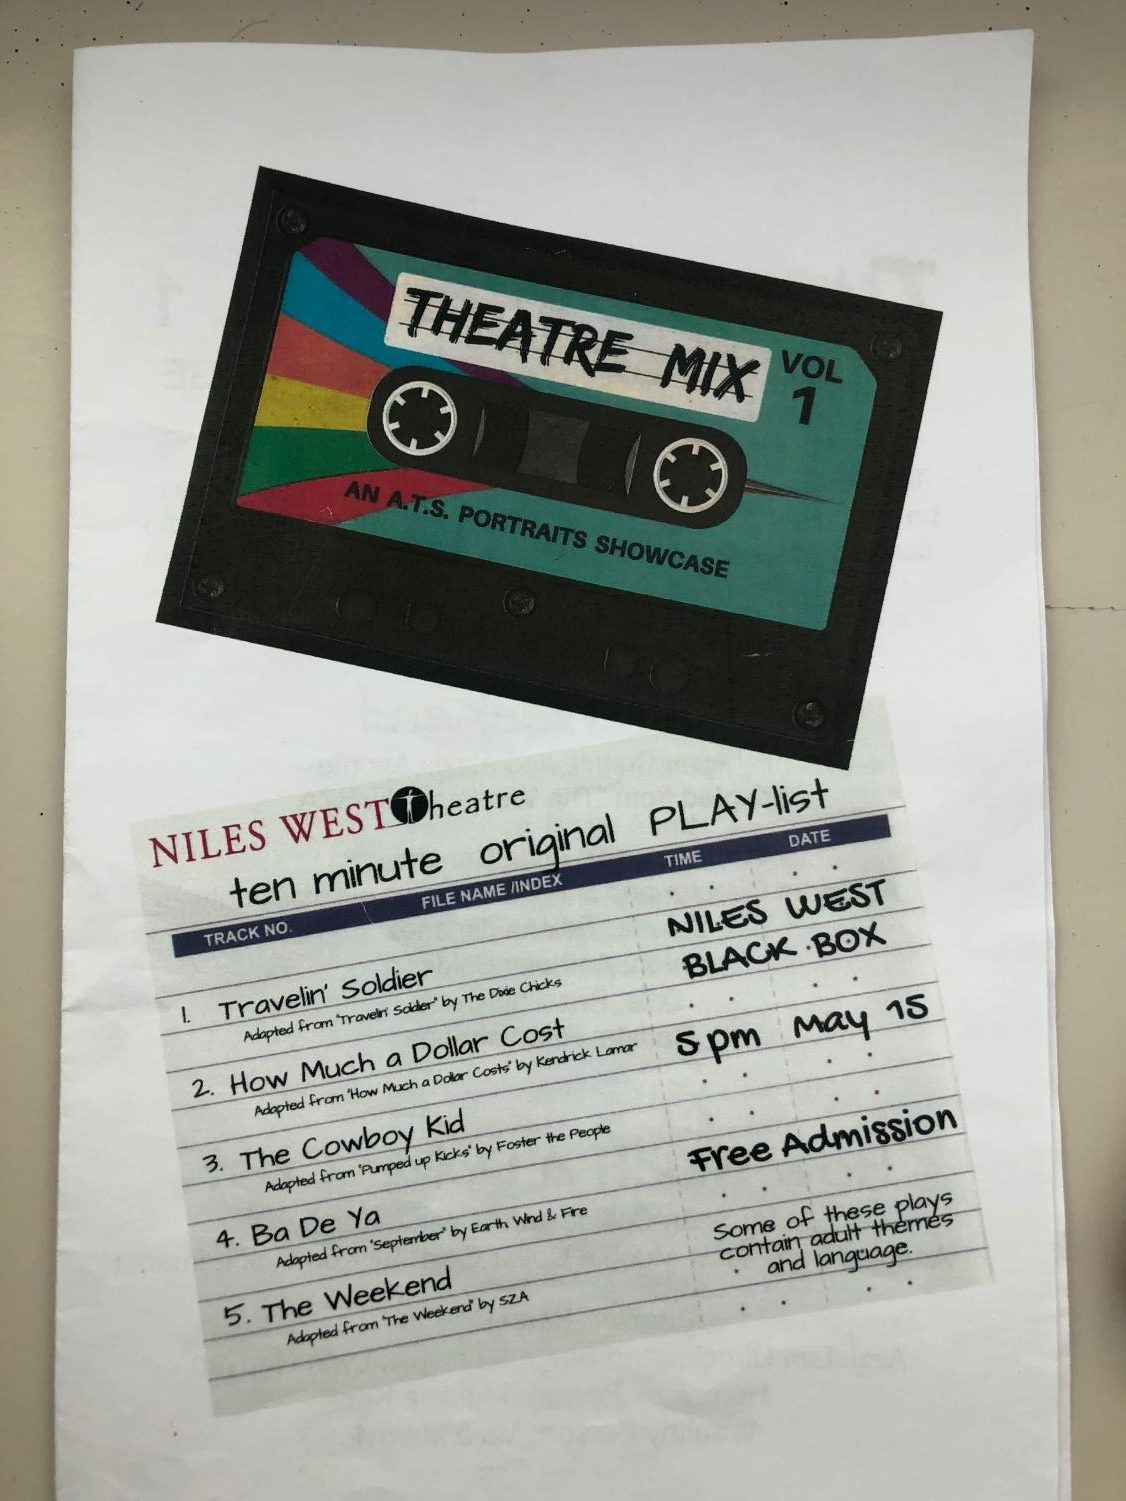 This is the pamphlet from the 2018 Advanced Theatre Studio.